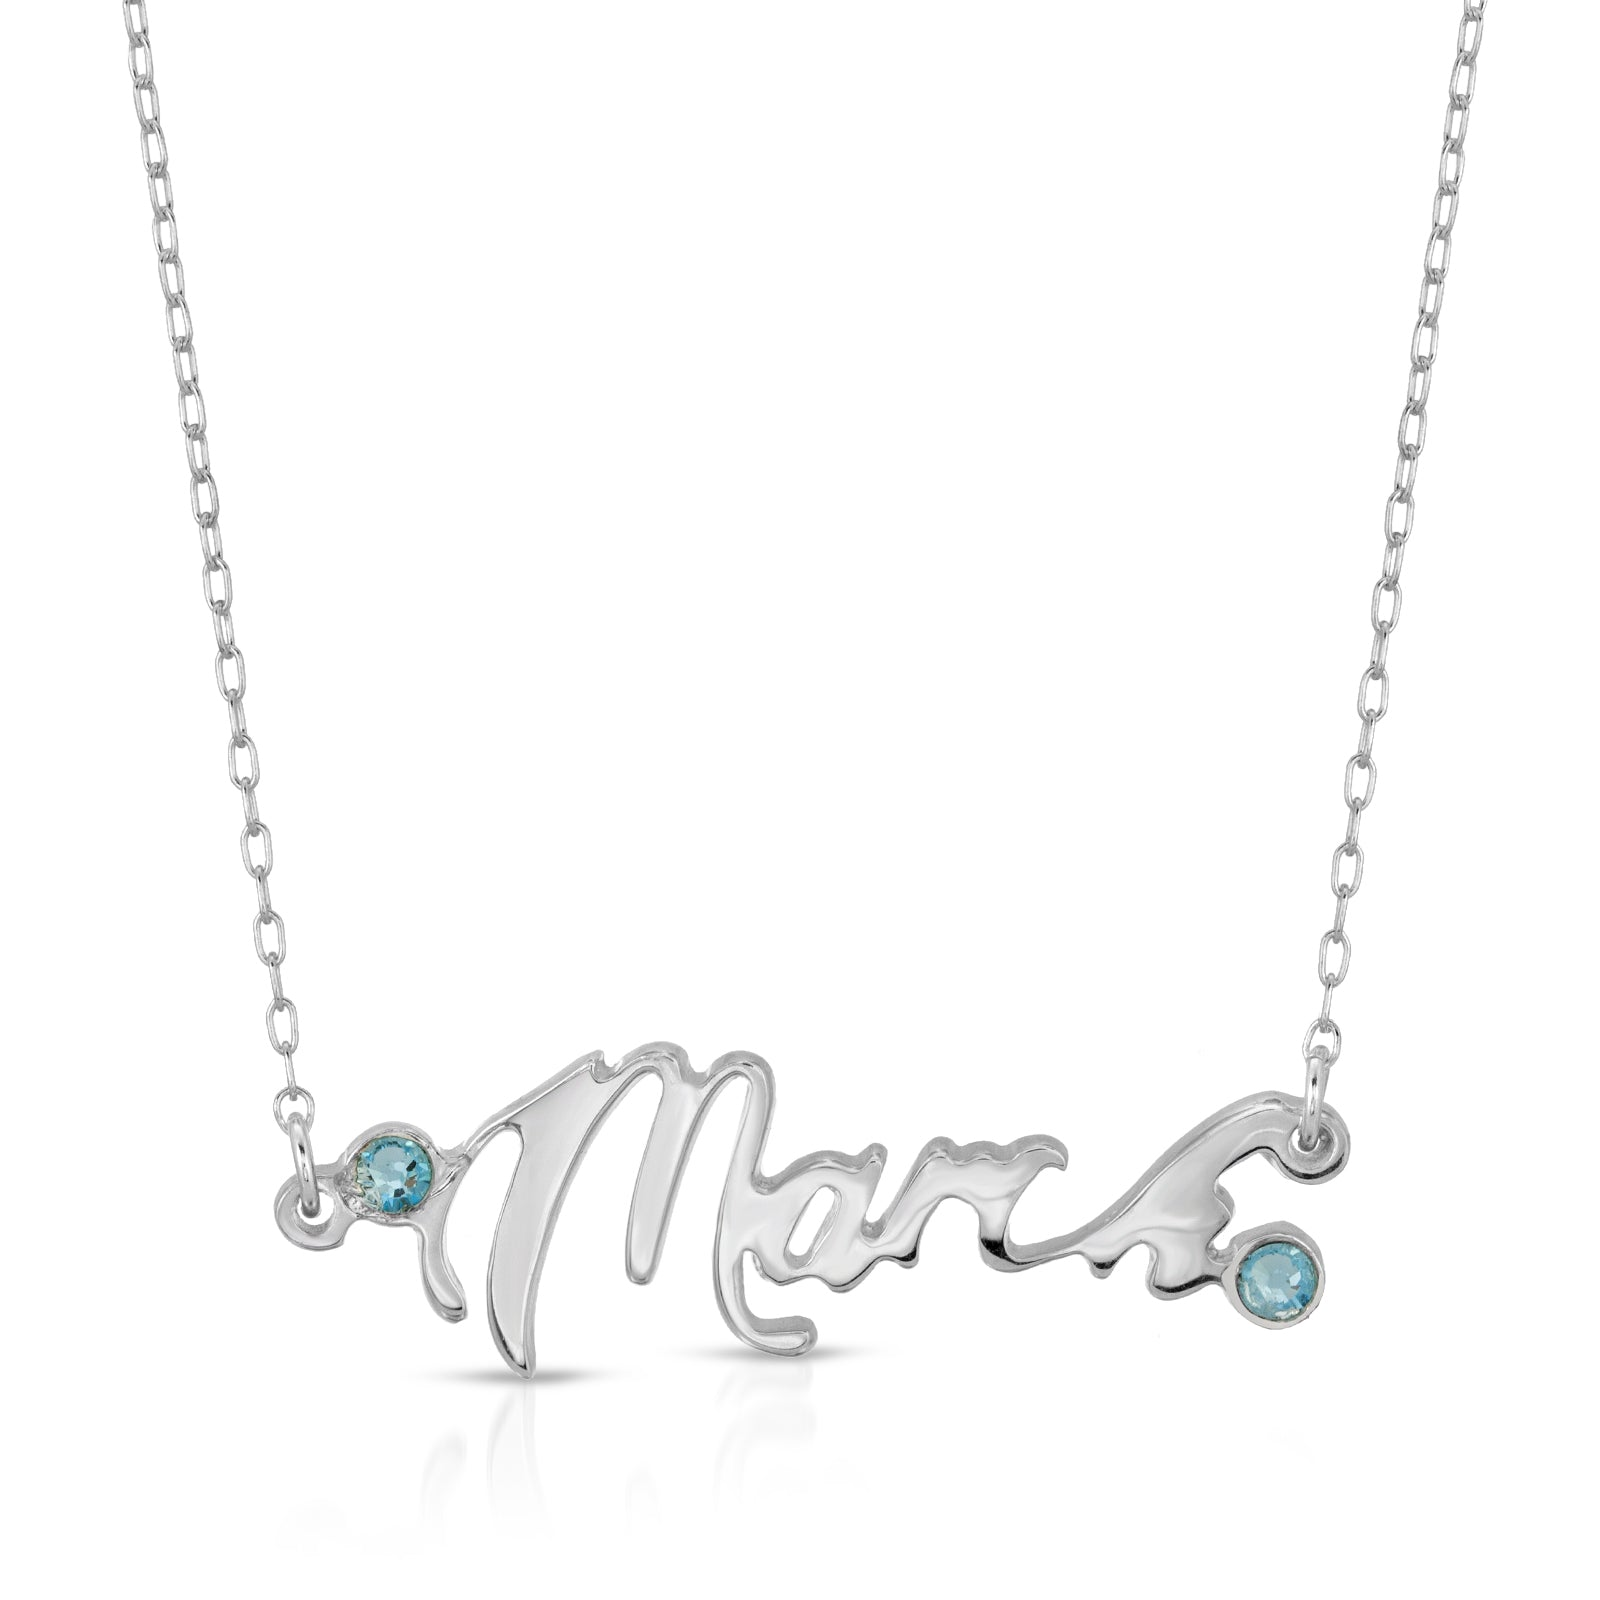 The W Brothers Month March Month Aquamarine Necklace Pendant fashionable for men and women's March Aquamarine crystal birthstone birthday necklace. Crafted from premium Grade A Sterling Silver for an elegant and modern jewelry accessory. Available at www.thewbros.com